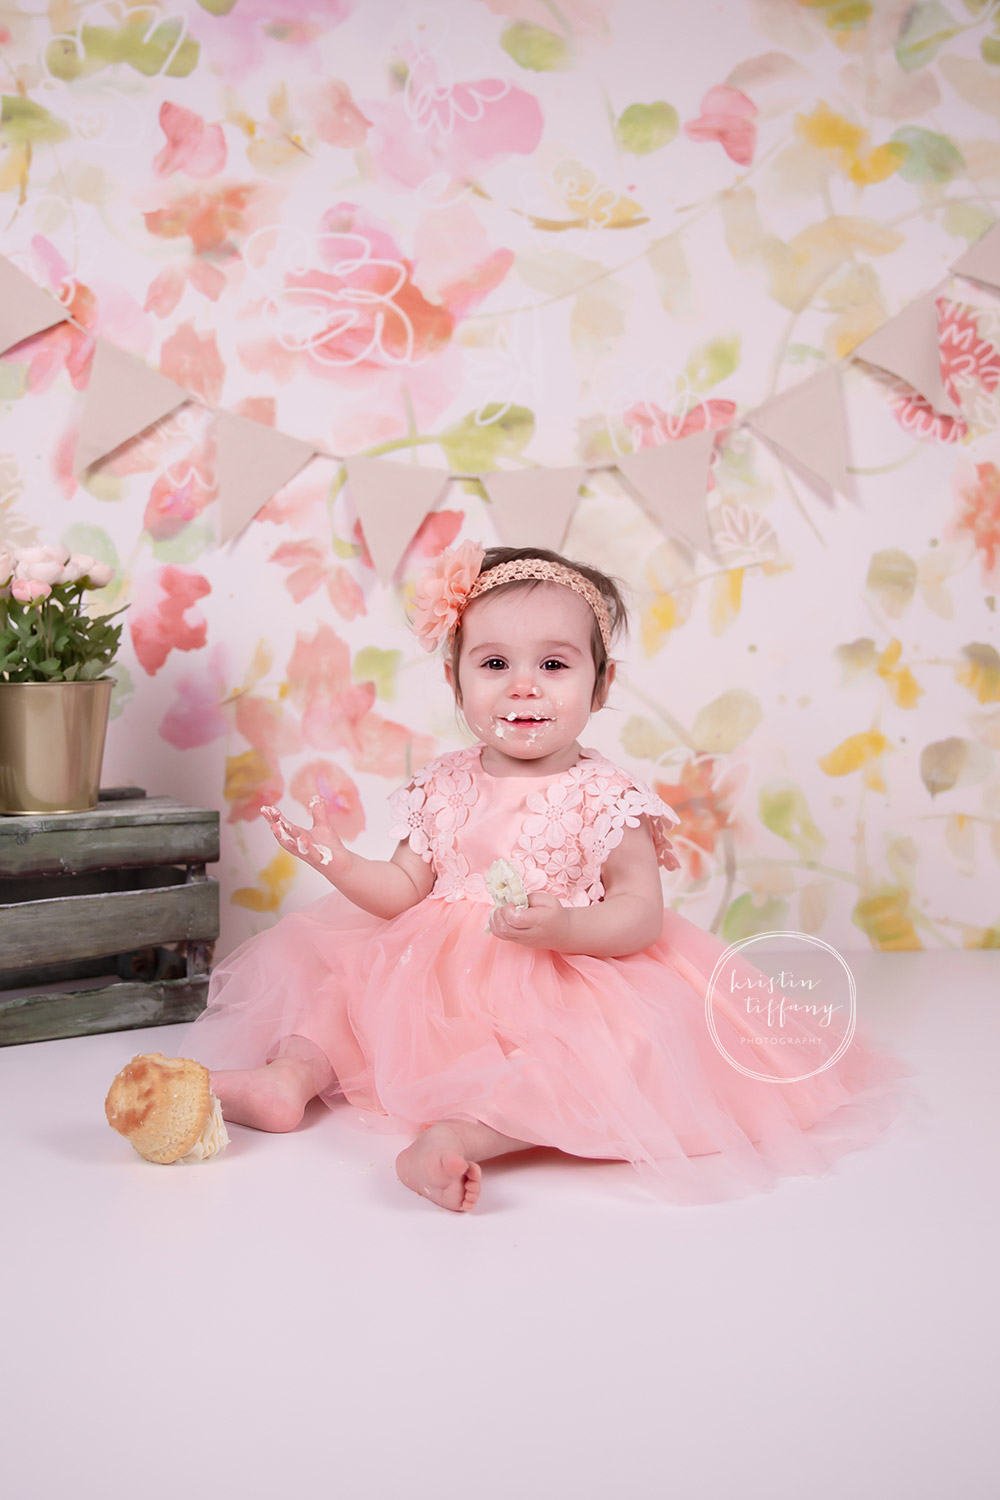 a photo of a baby girl at a cake smash mini session